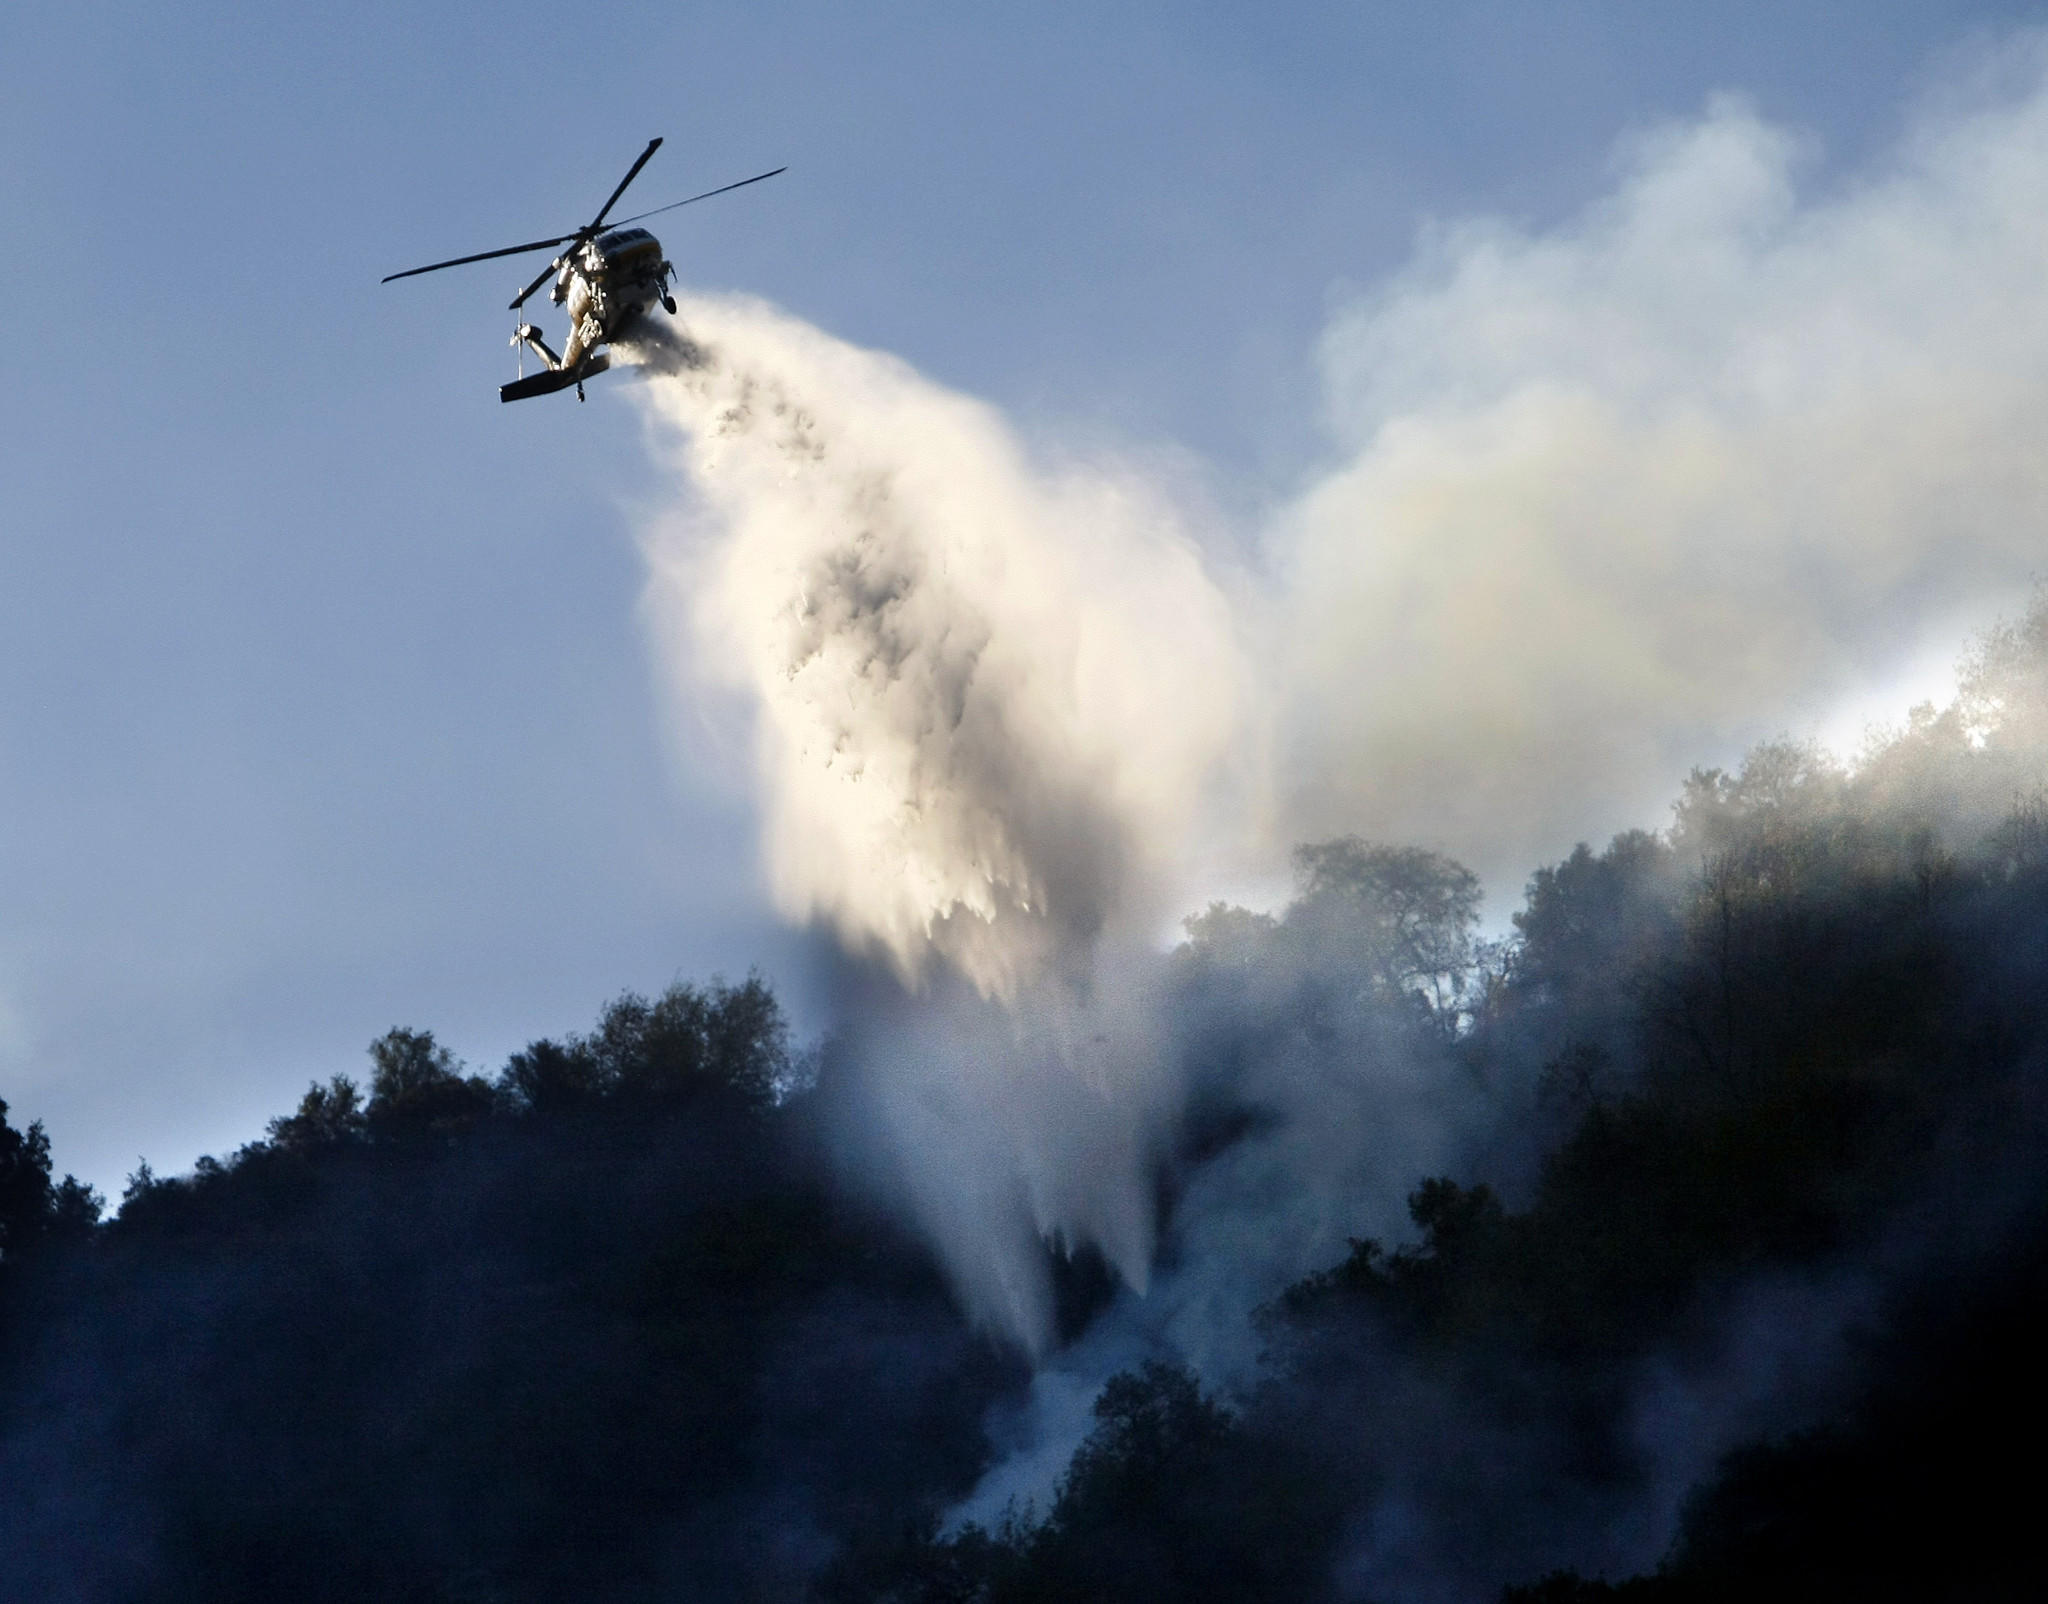 A helicopter drops water on spot fires on a smoky morning on day two of the Colby fire in the Angeles National Forest north of Azusa on Friday, January 17, 2014.